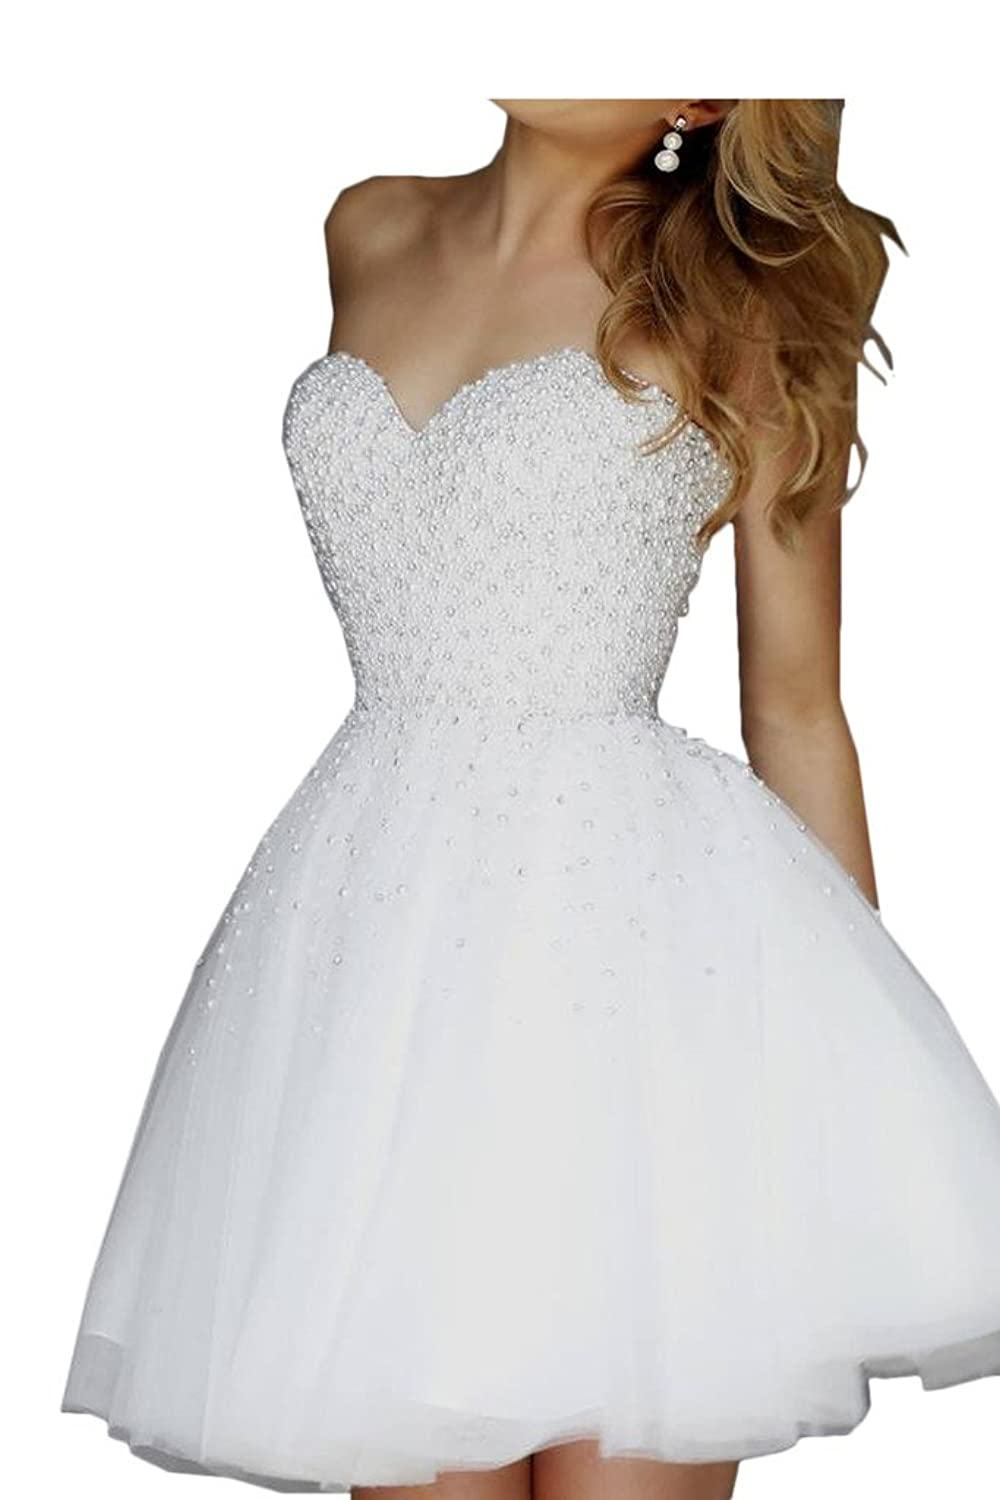 Audrey Bride Girl's Homecoming Dresses With Pearl Prom Dresses